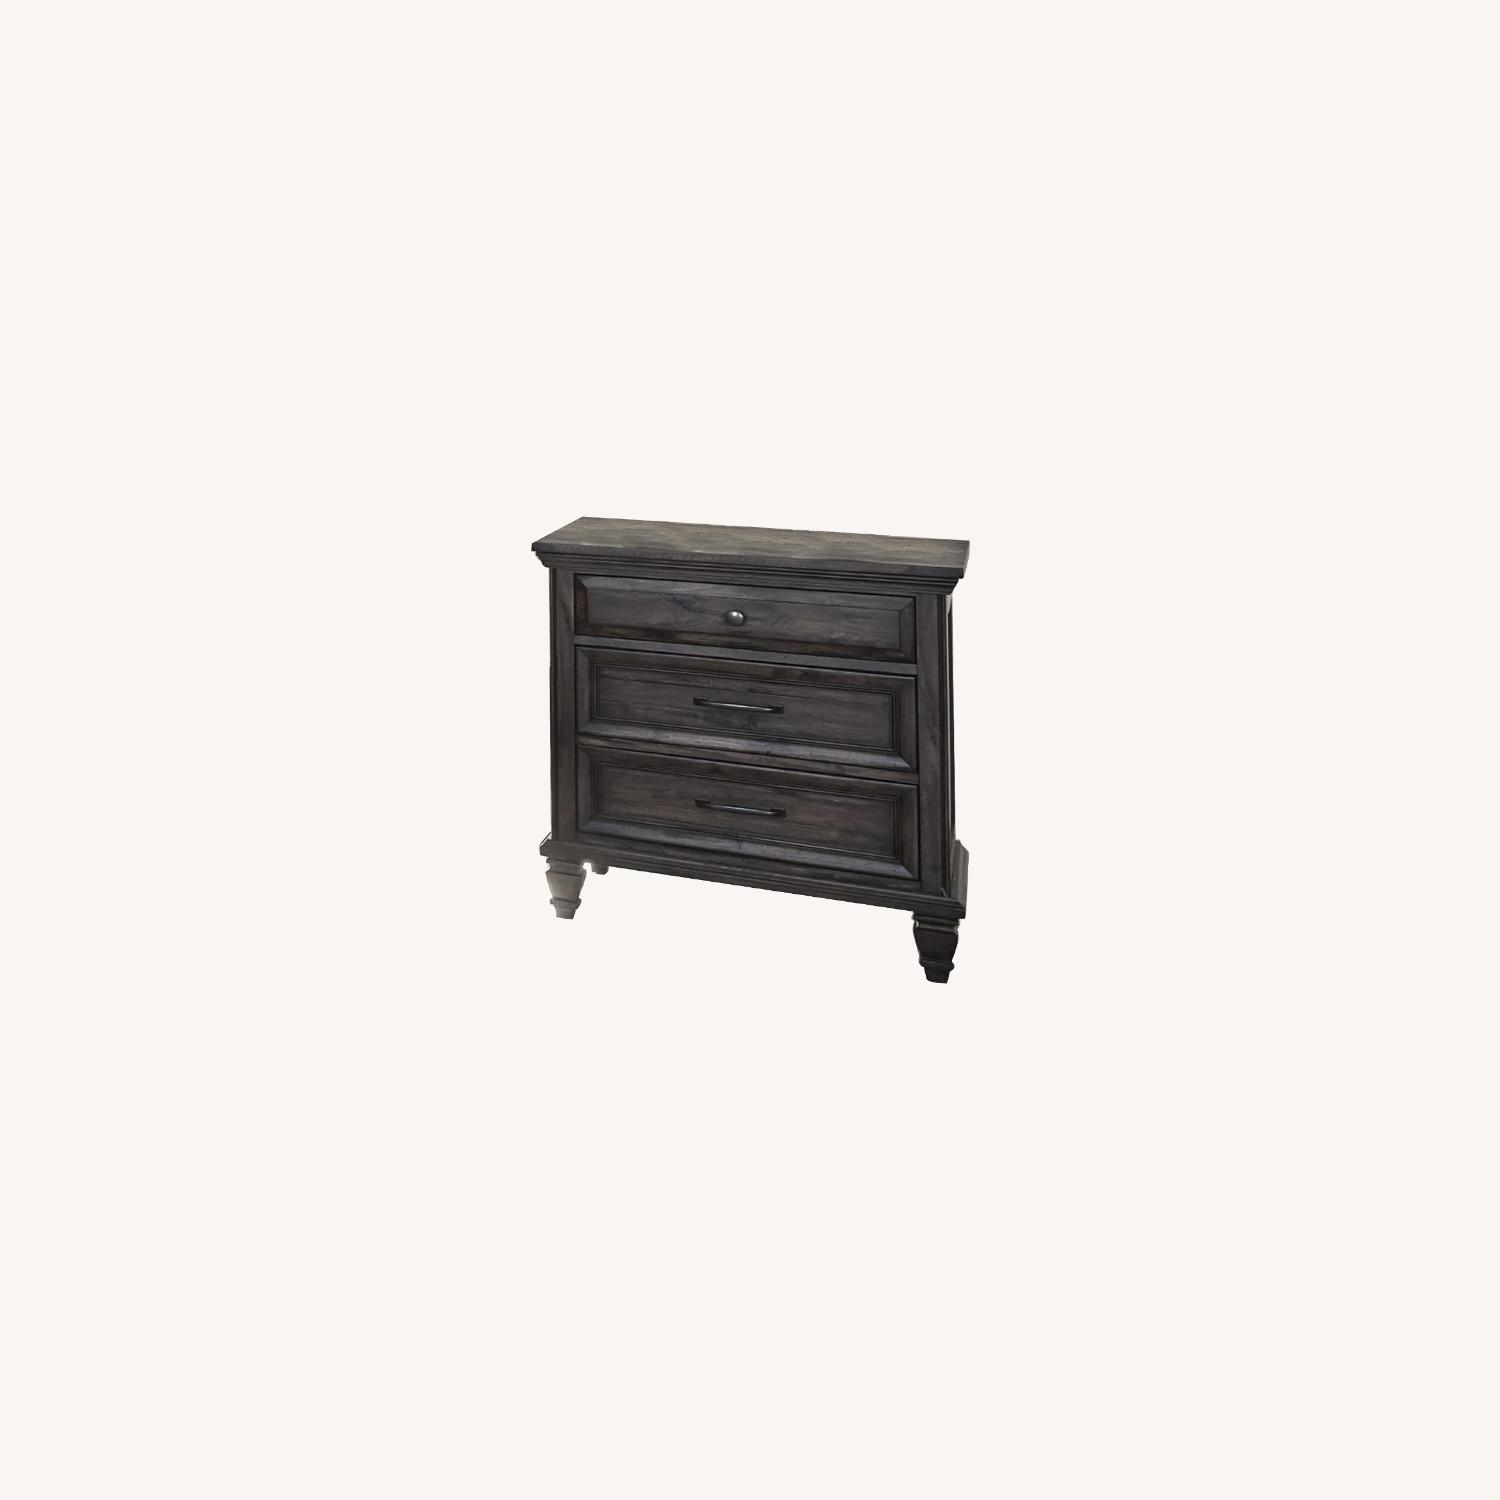 Nightstand W/ USB Port In Weathered Brown Finish - image-3